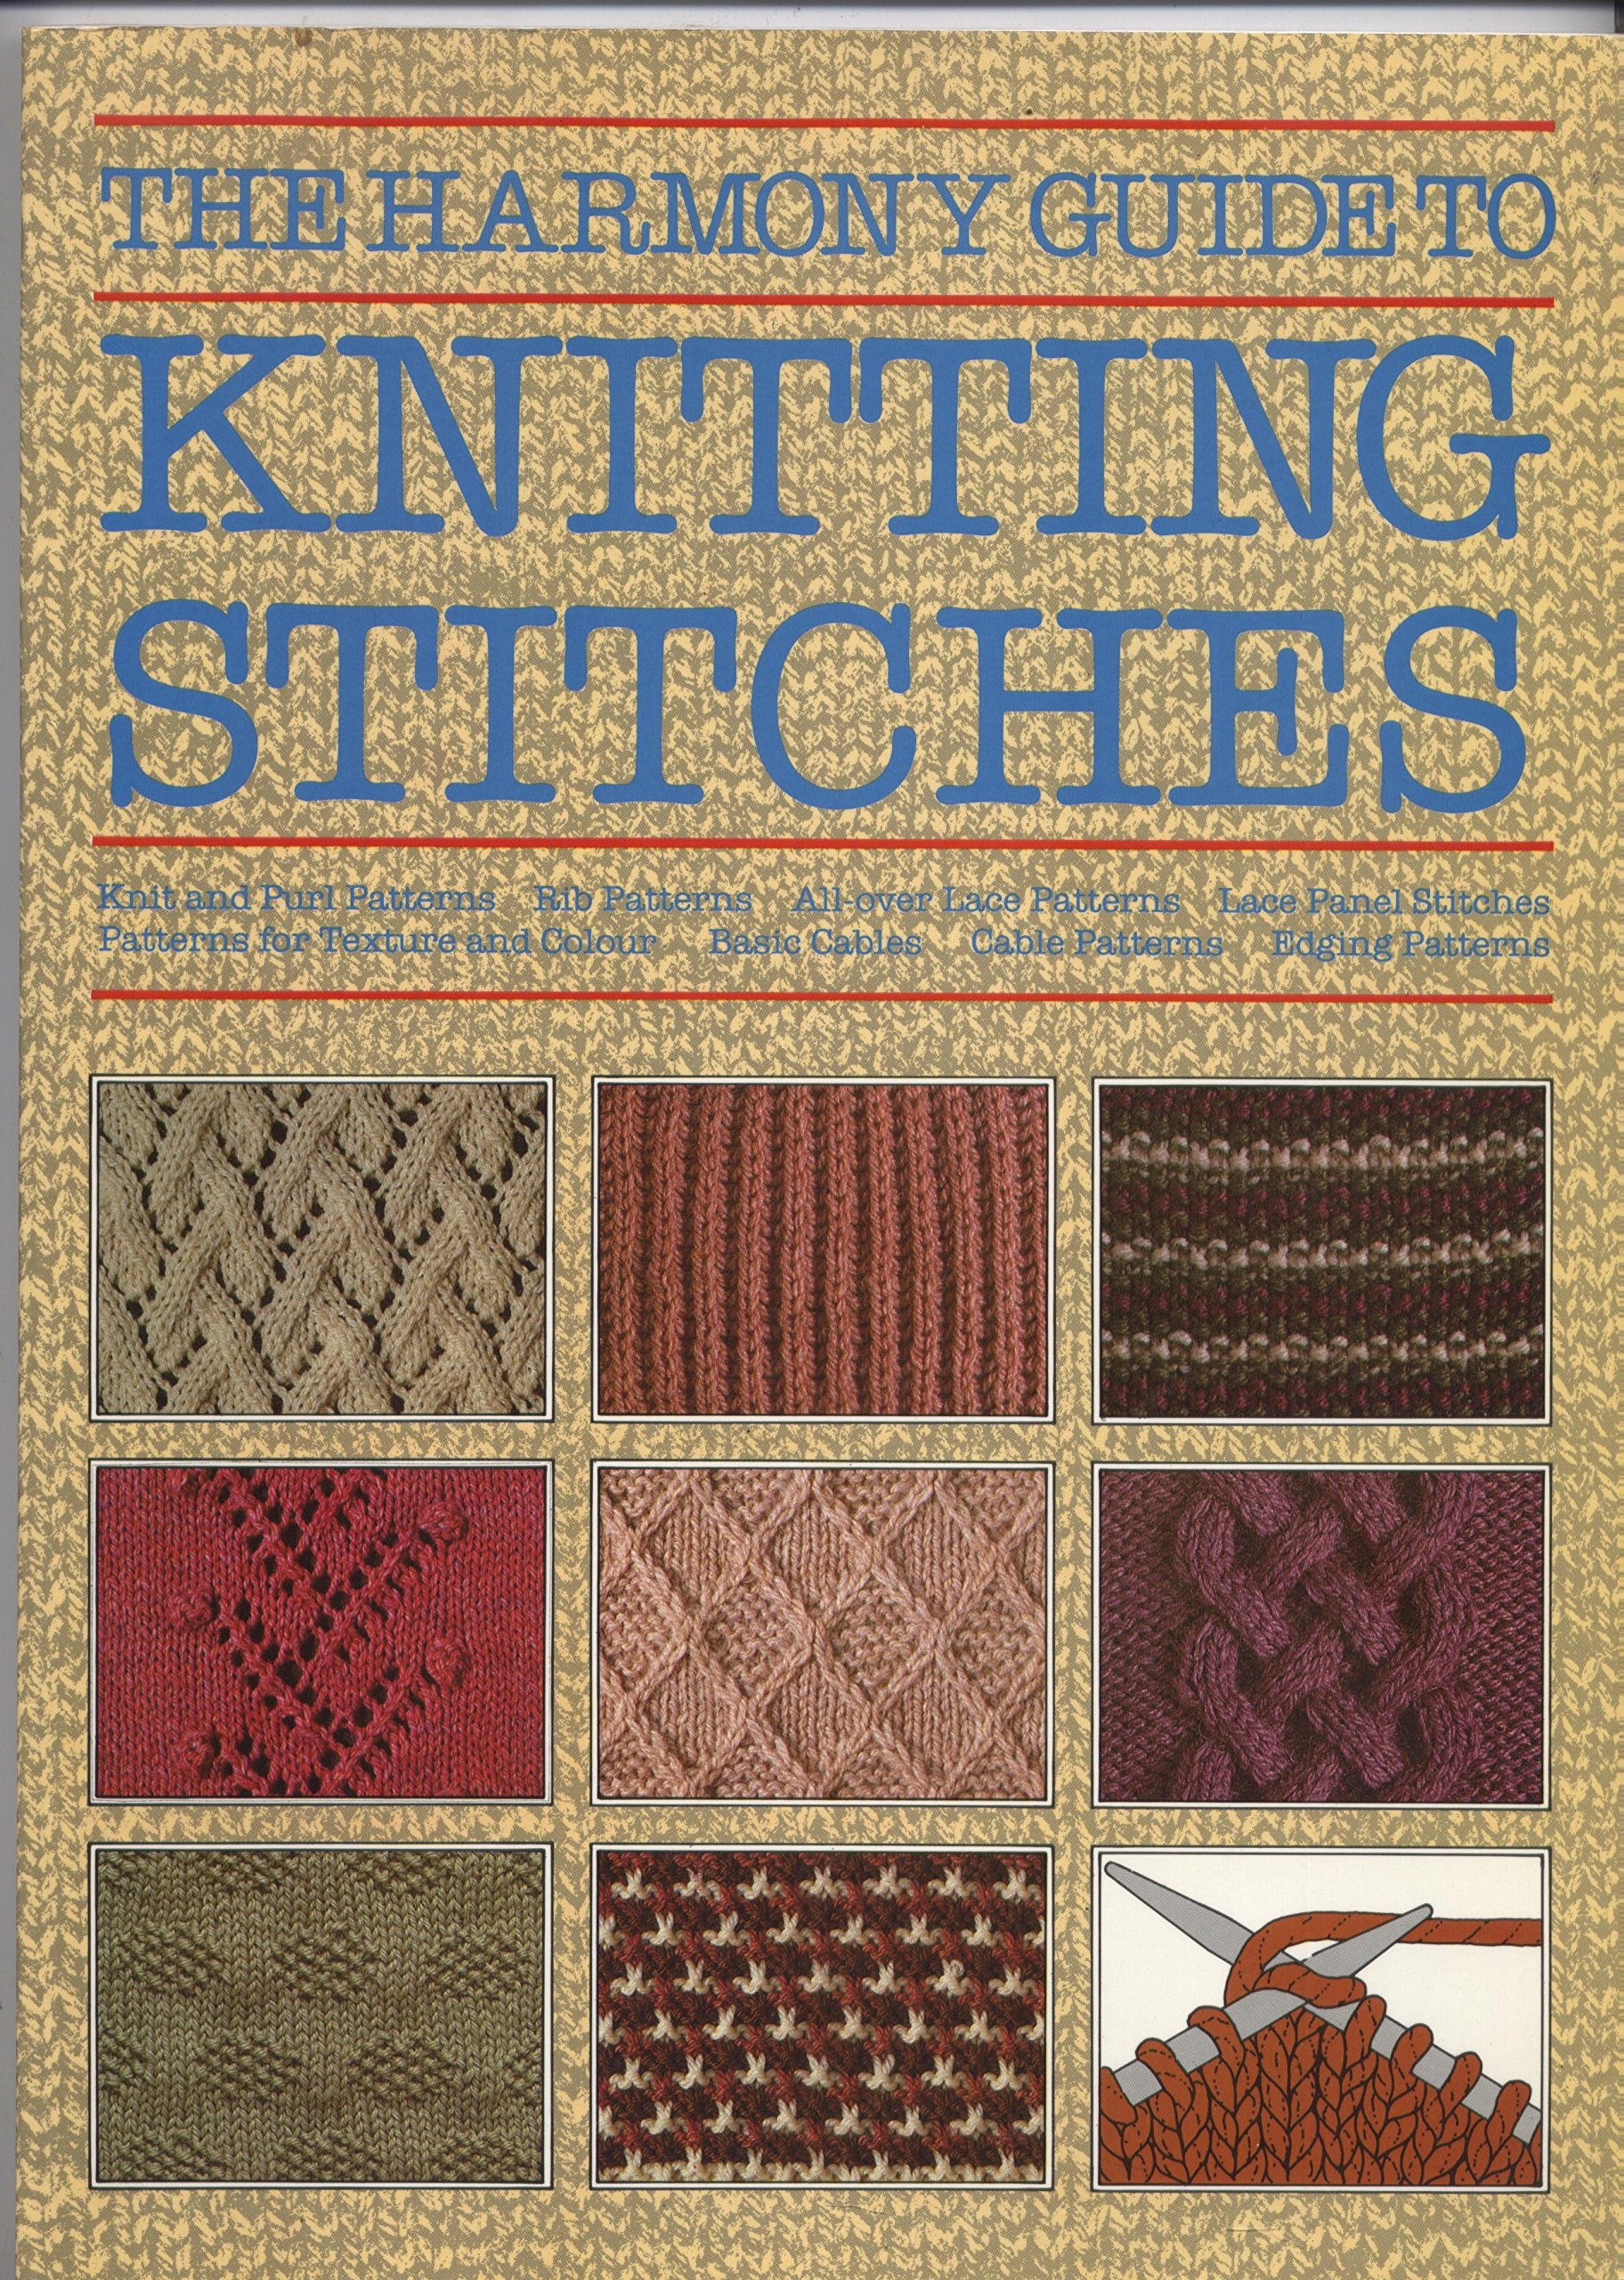 The Harmony Guide to Knitting Stitches: Lyric Books: 9780711100138 ...